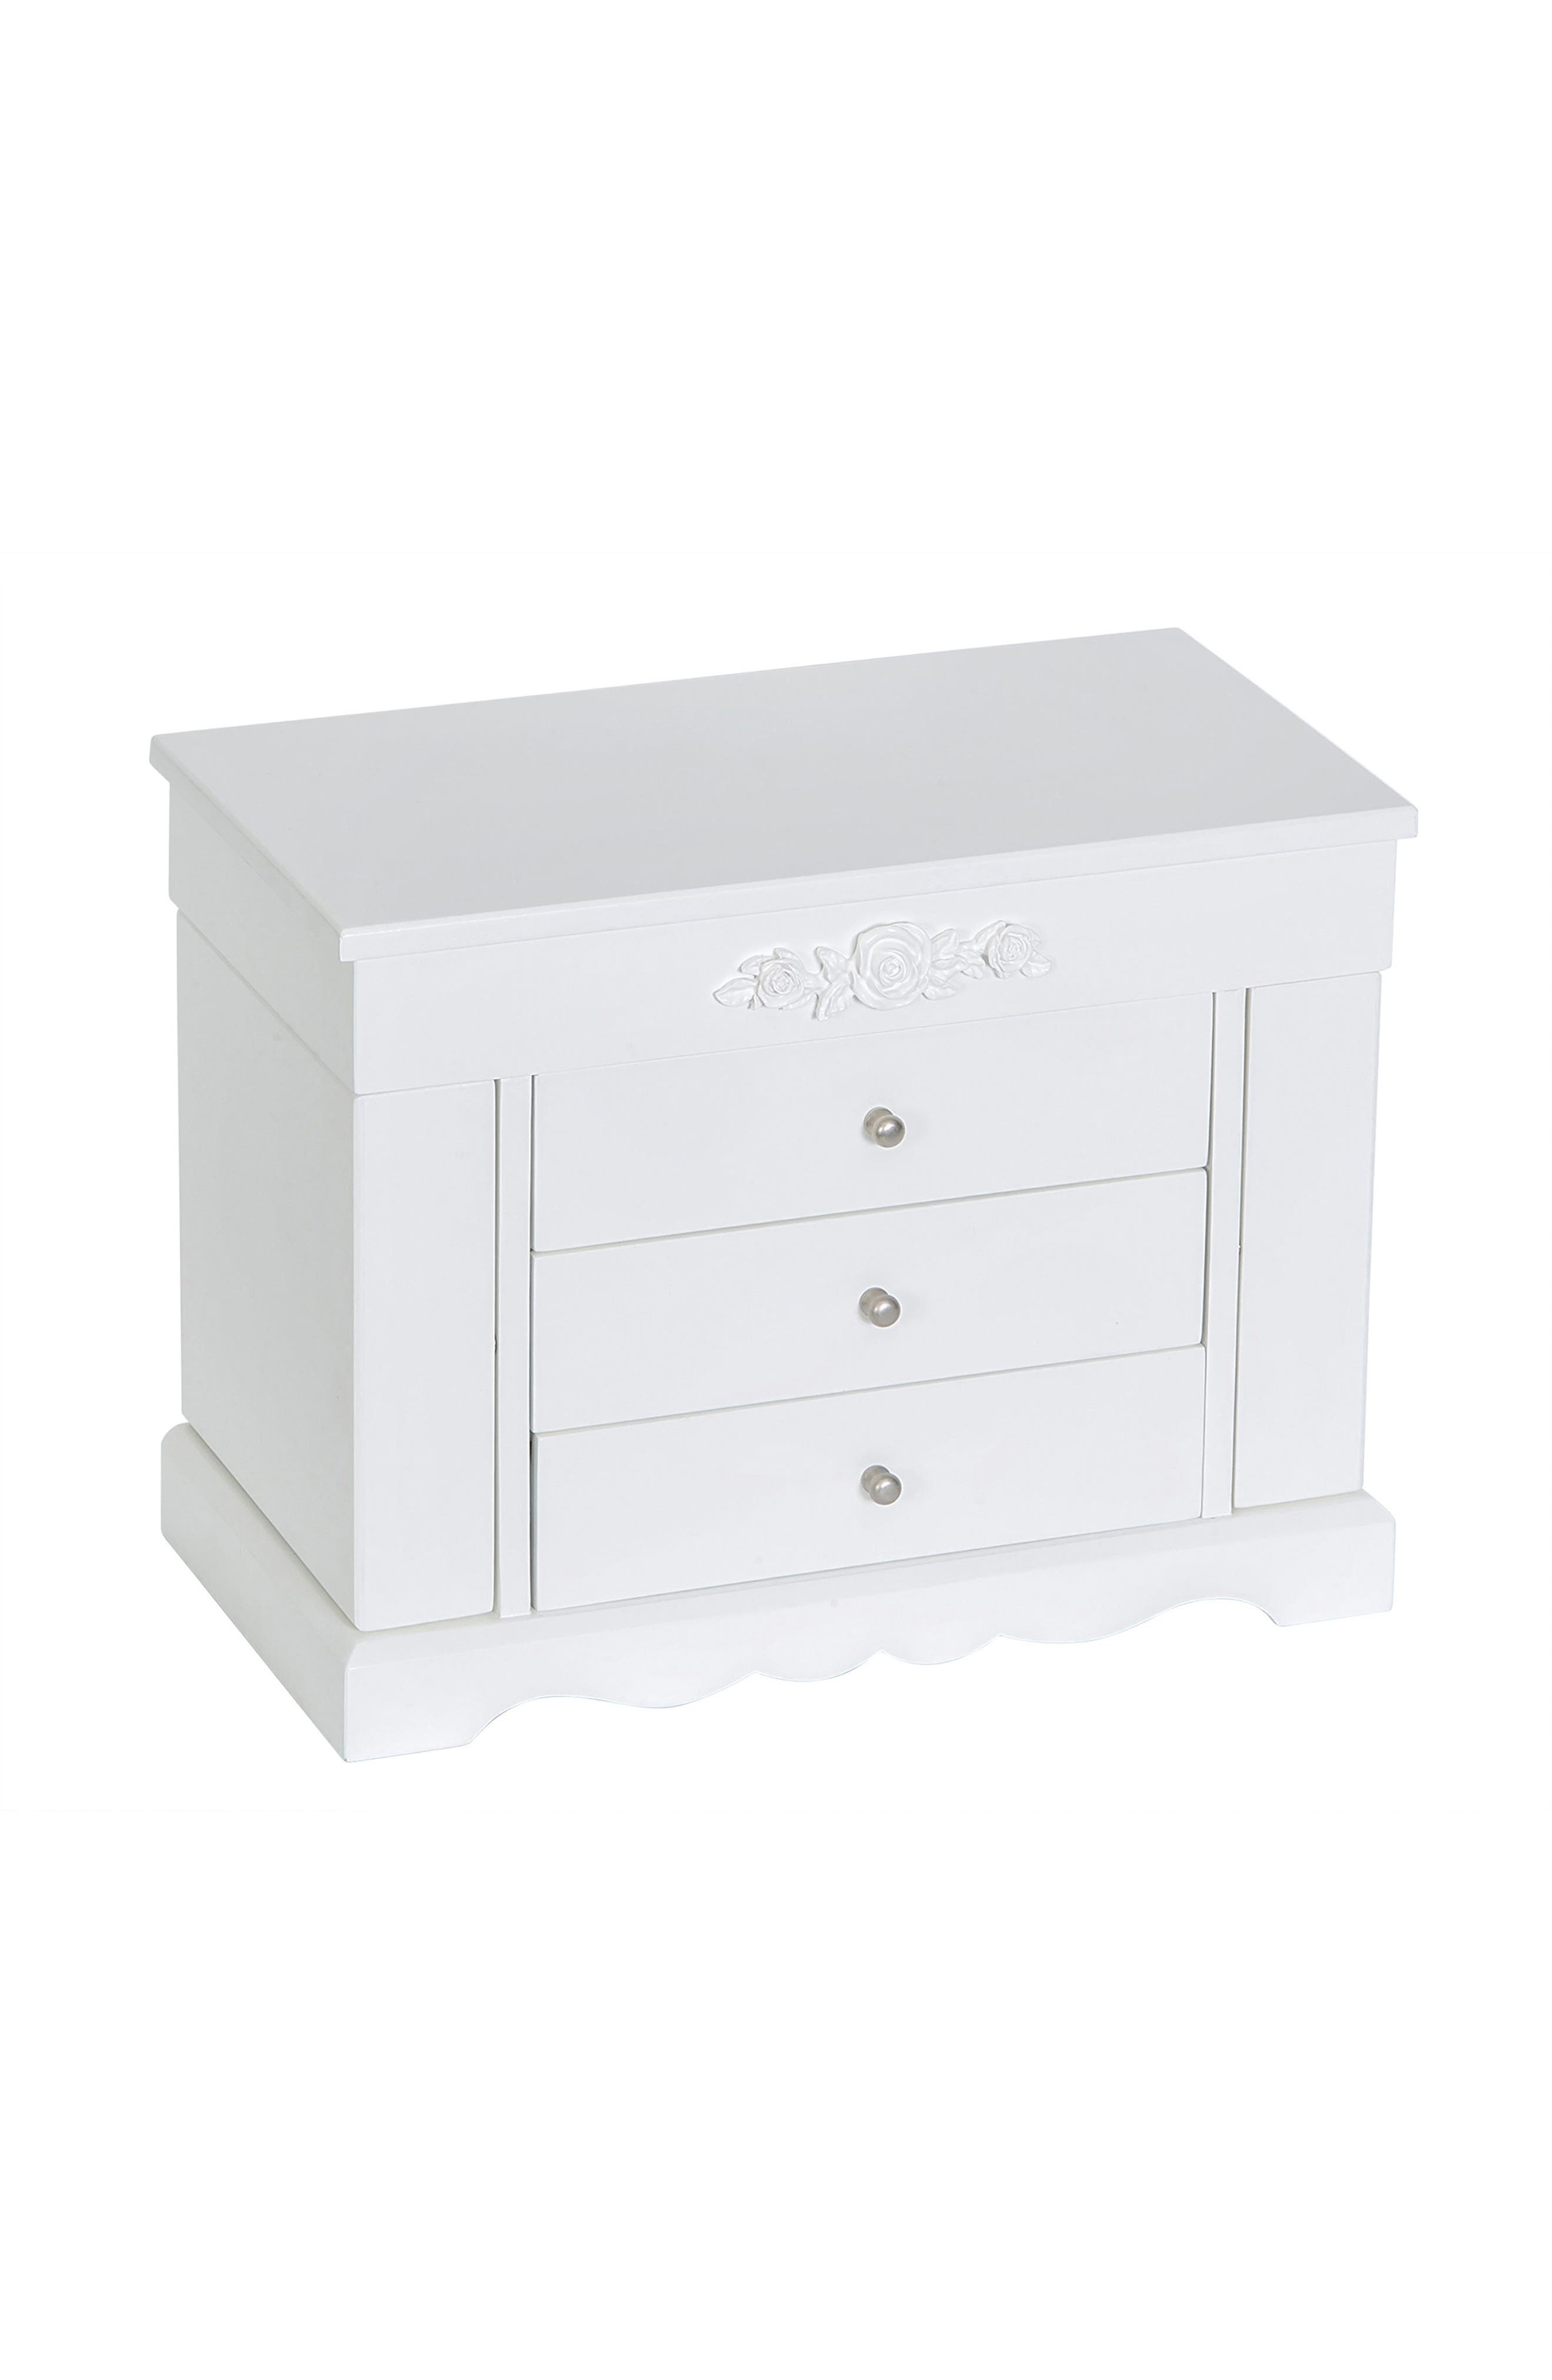 Alternate Image 1 Selected - Mele & Co. Montague Jewelry Box